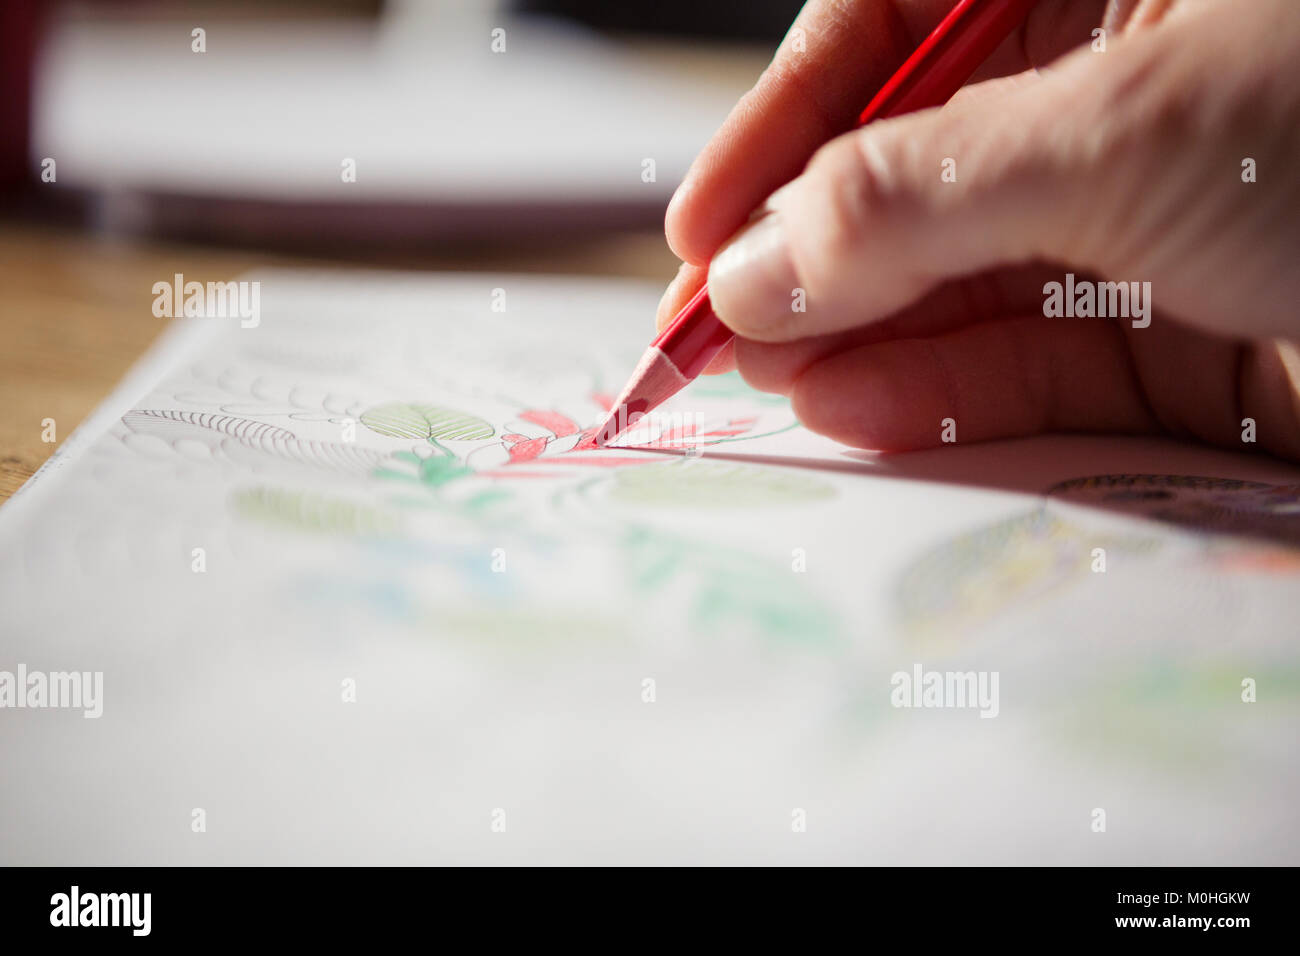 Adult using pencil in an adult colouring book - Stock Image